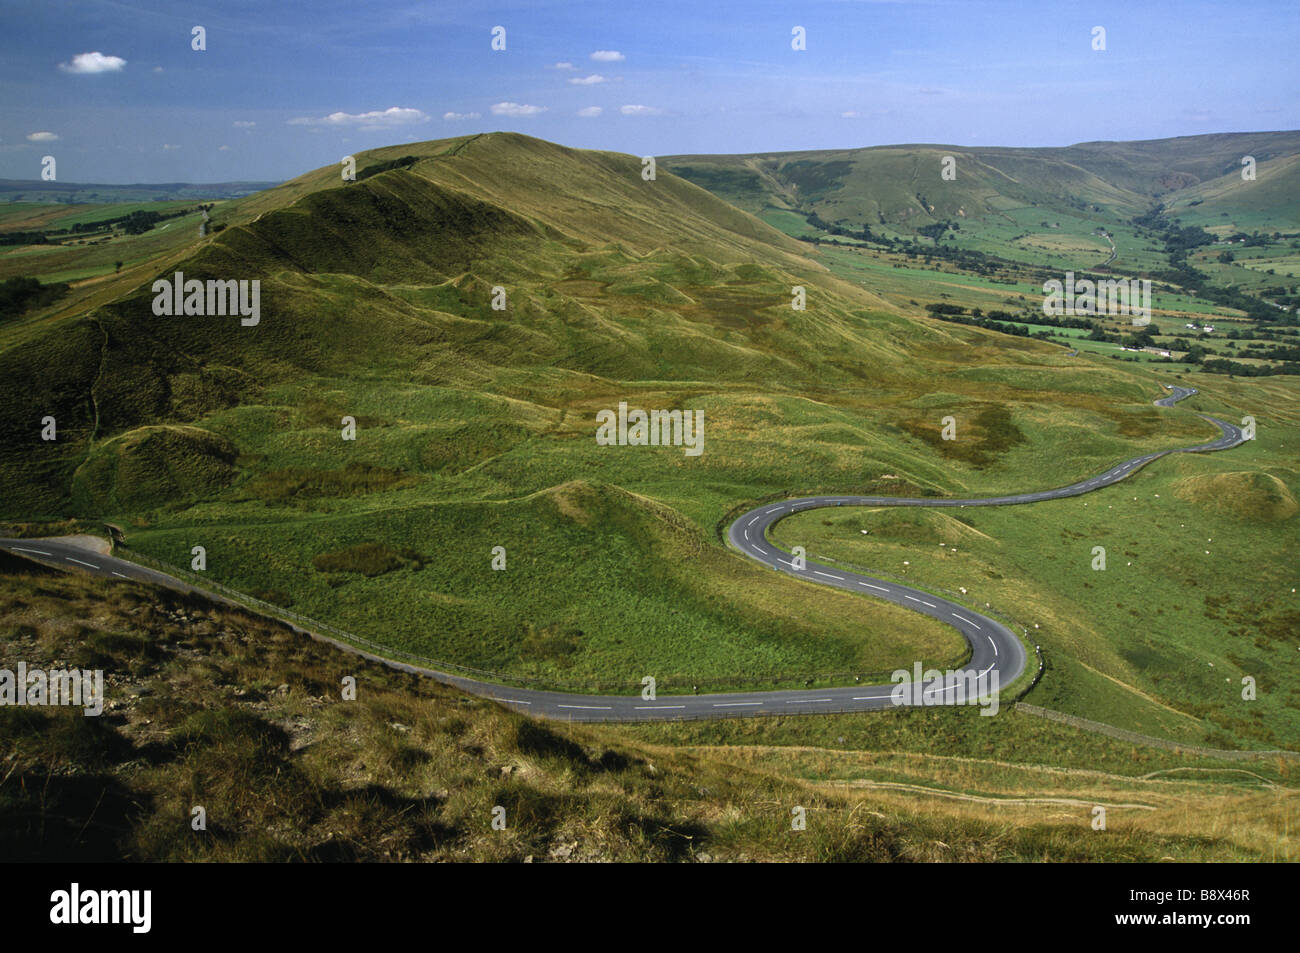 A view of Rushup Edge from Mam Tor in the Peak District with a road winding at the bottom of the hill - Stock Image